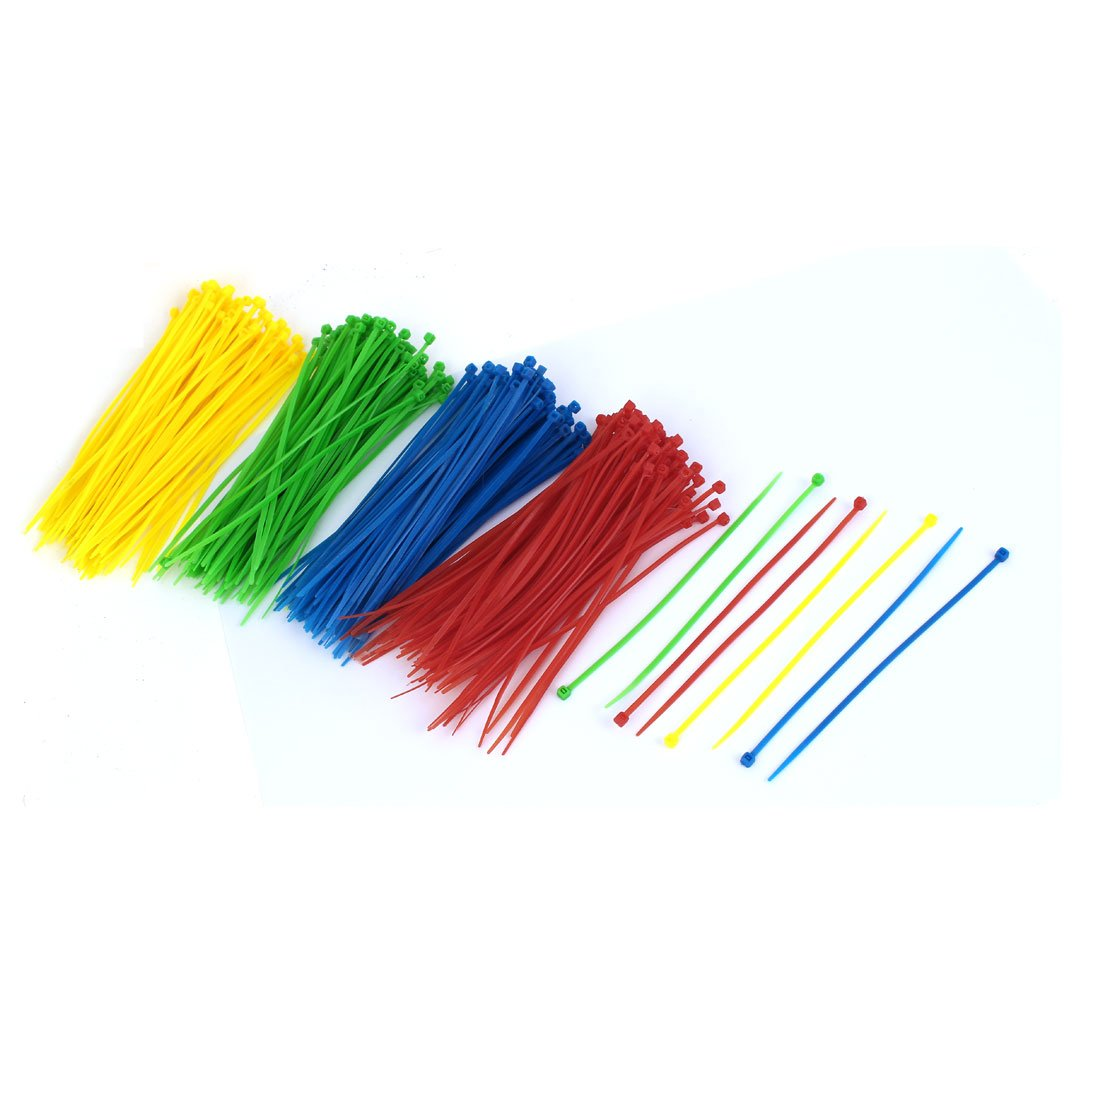 Sourcingmap-150mm de largo 3mm de ancho bridas para cable wrap con cremallera, color rojo, azul, verde, amarillo 400pcs a16033100ux0138